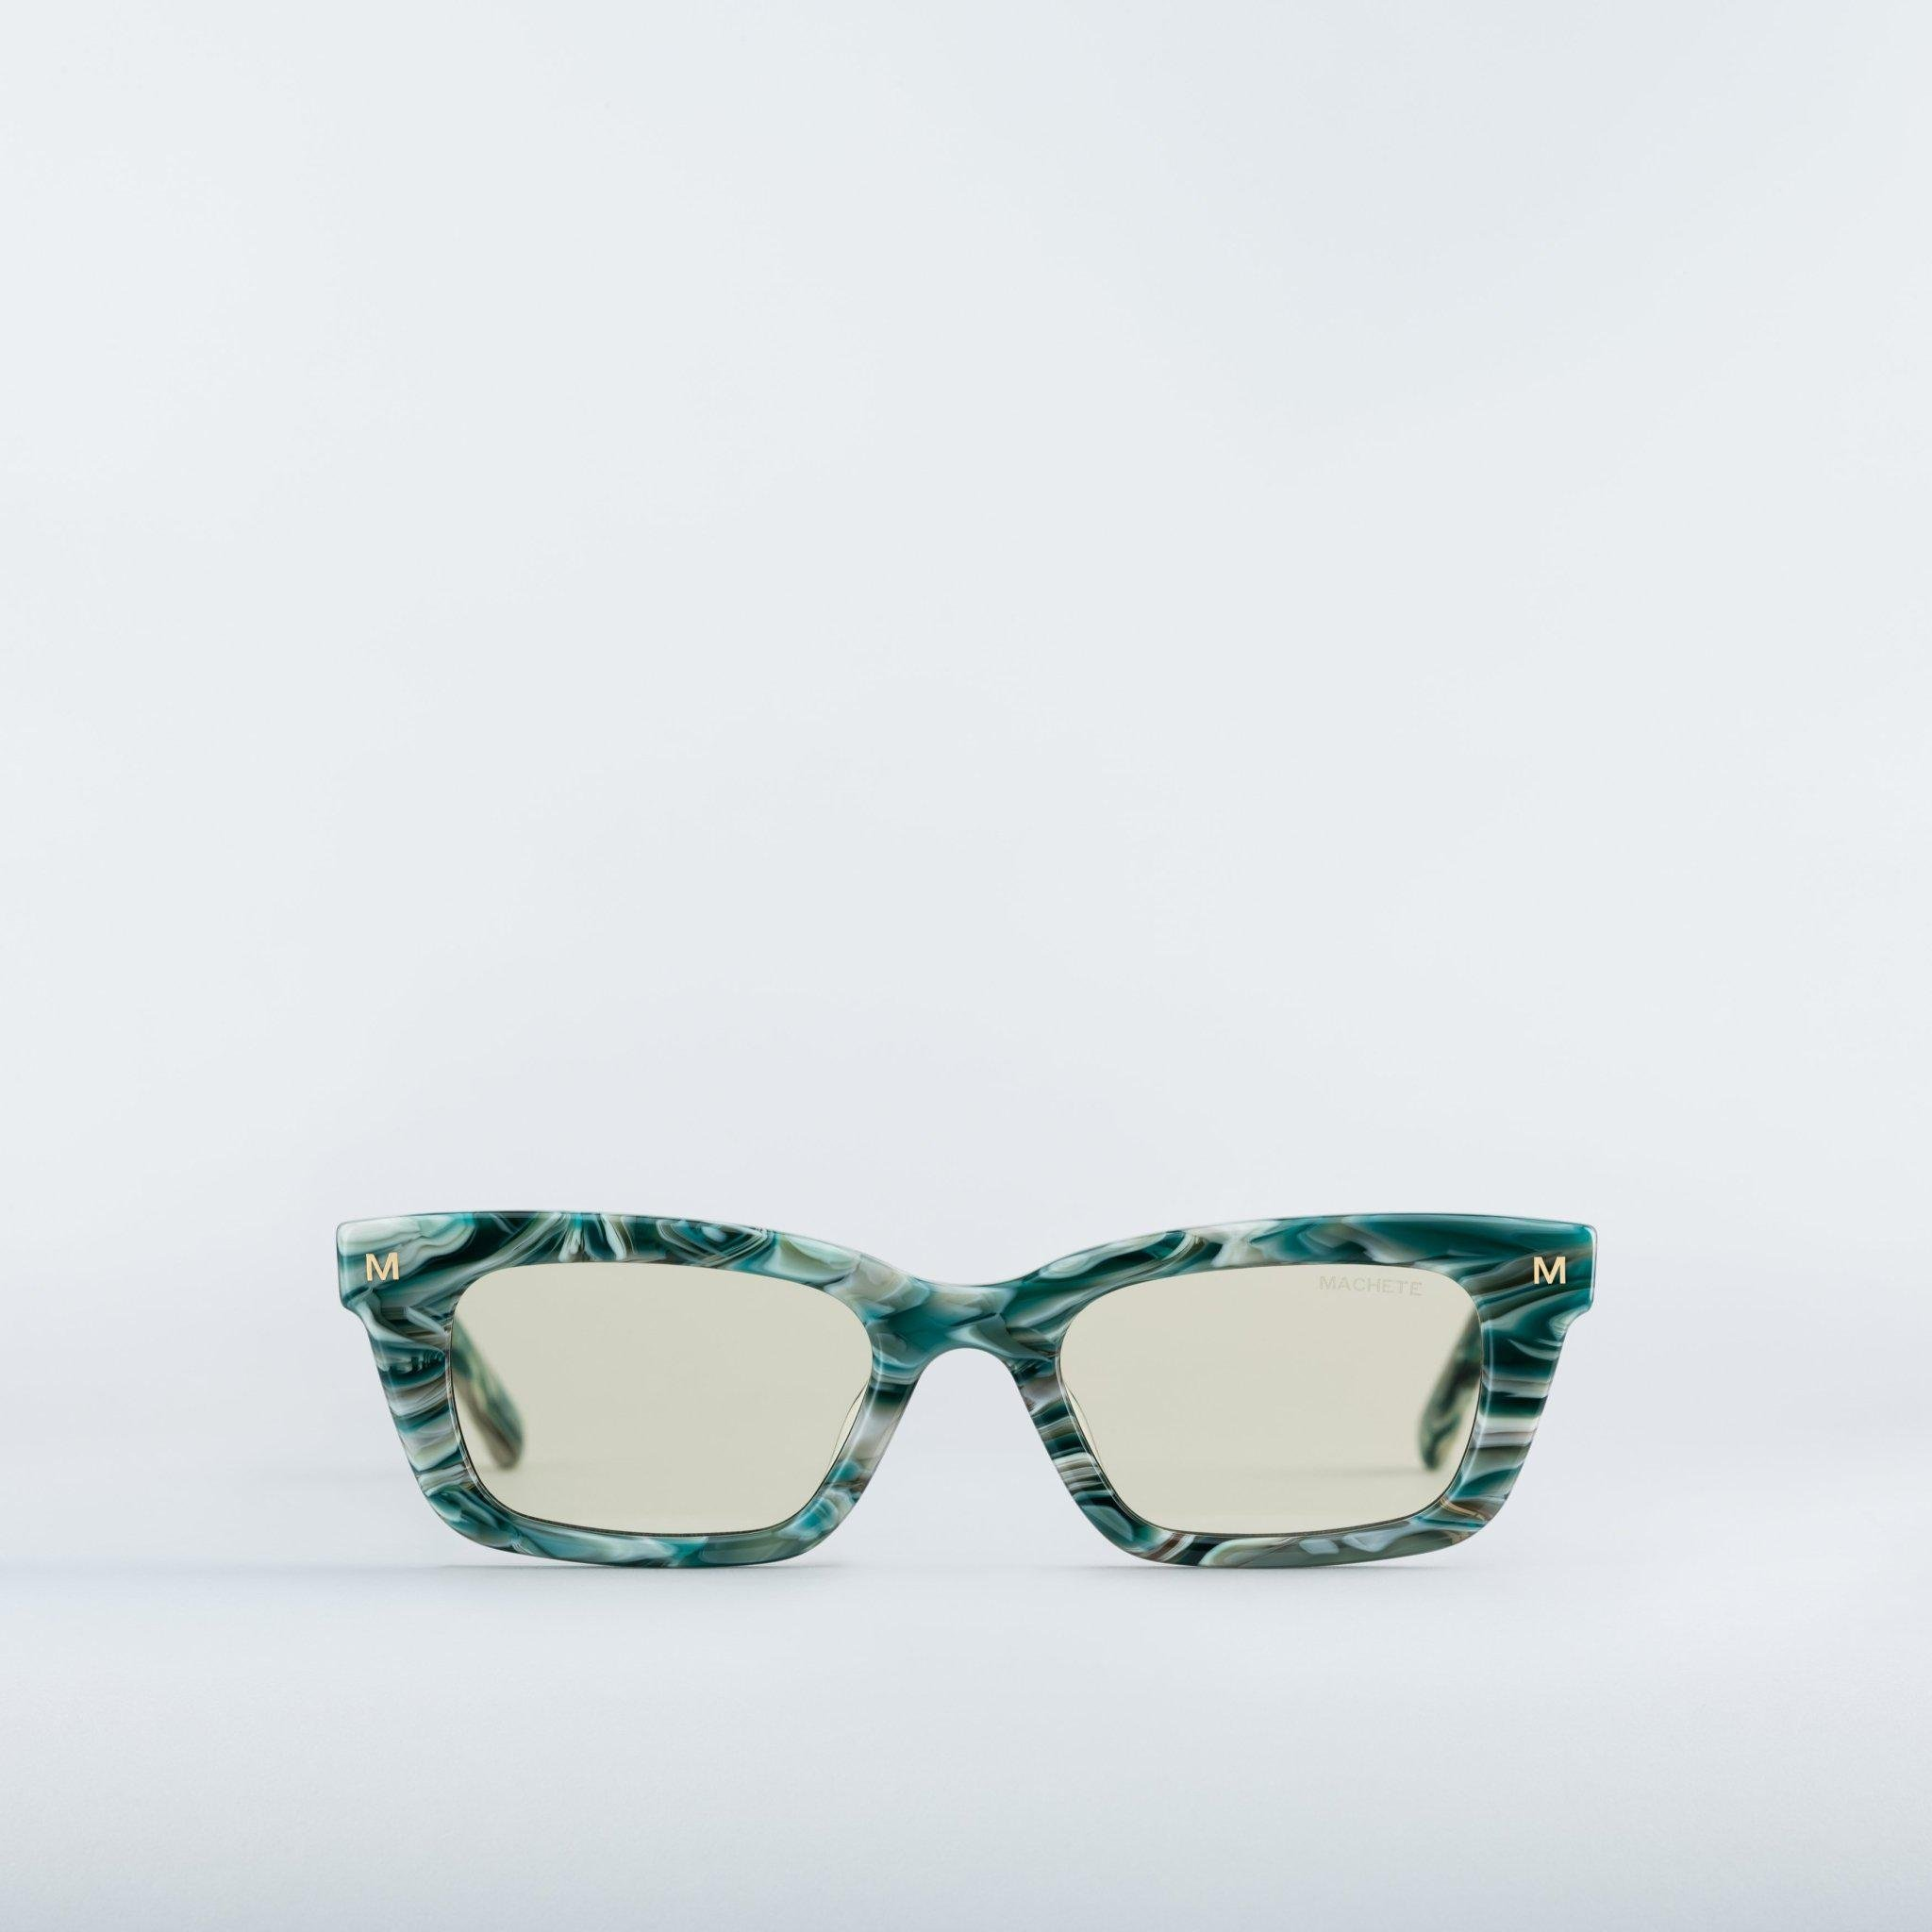 Ruby - Sunglasses in Stromanthe